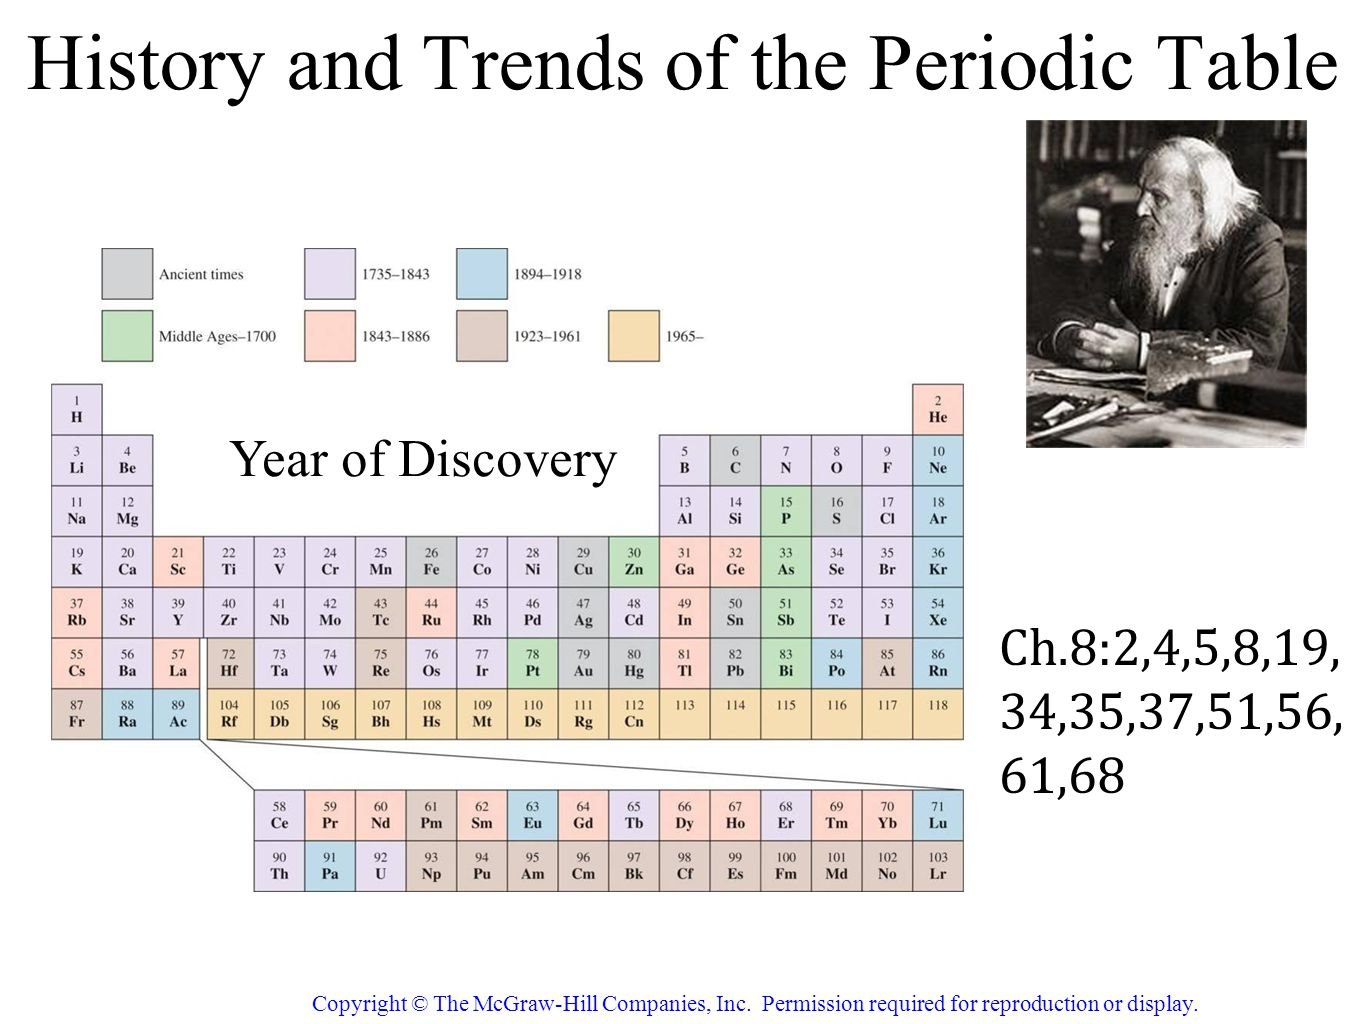 History and trends of the periodic table ppt video online download history and trends of the periodic table gamestrikefo Gallery